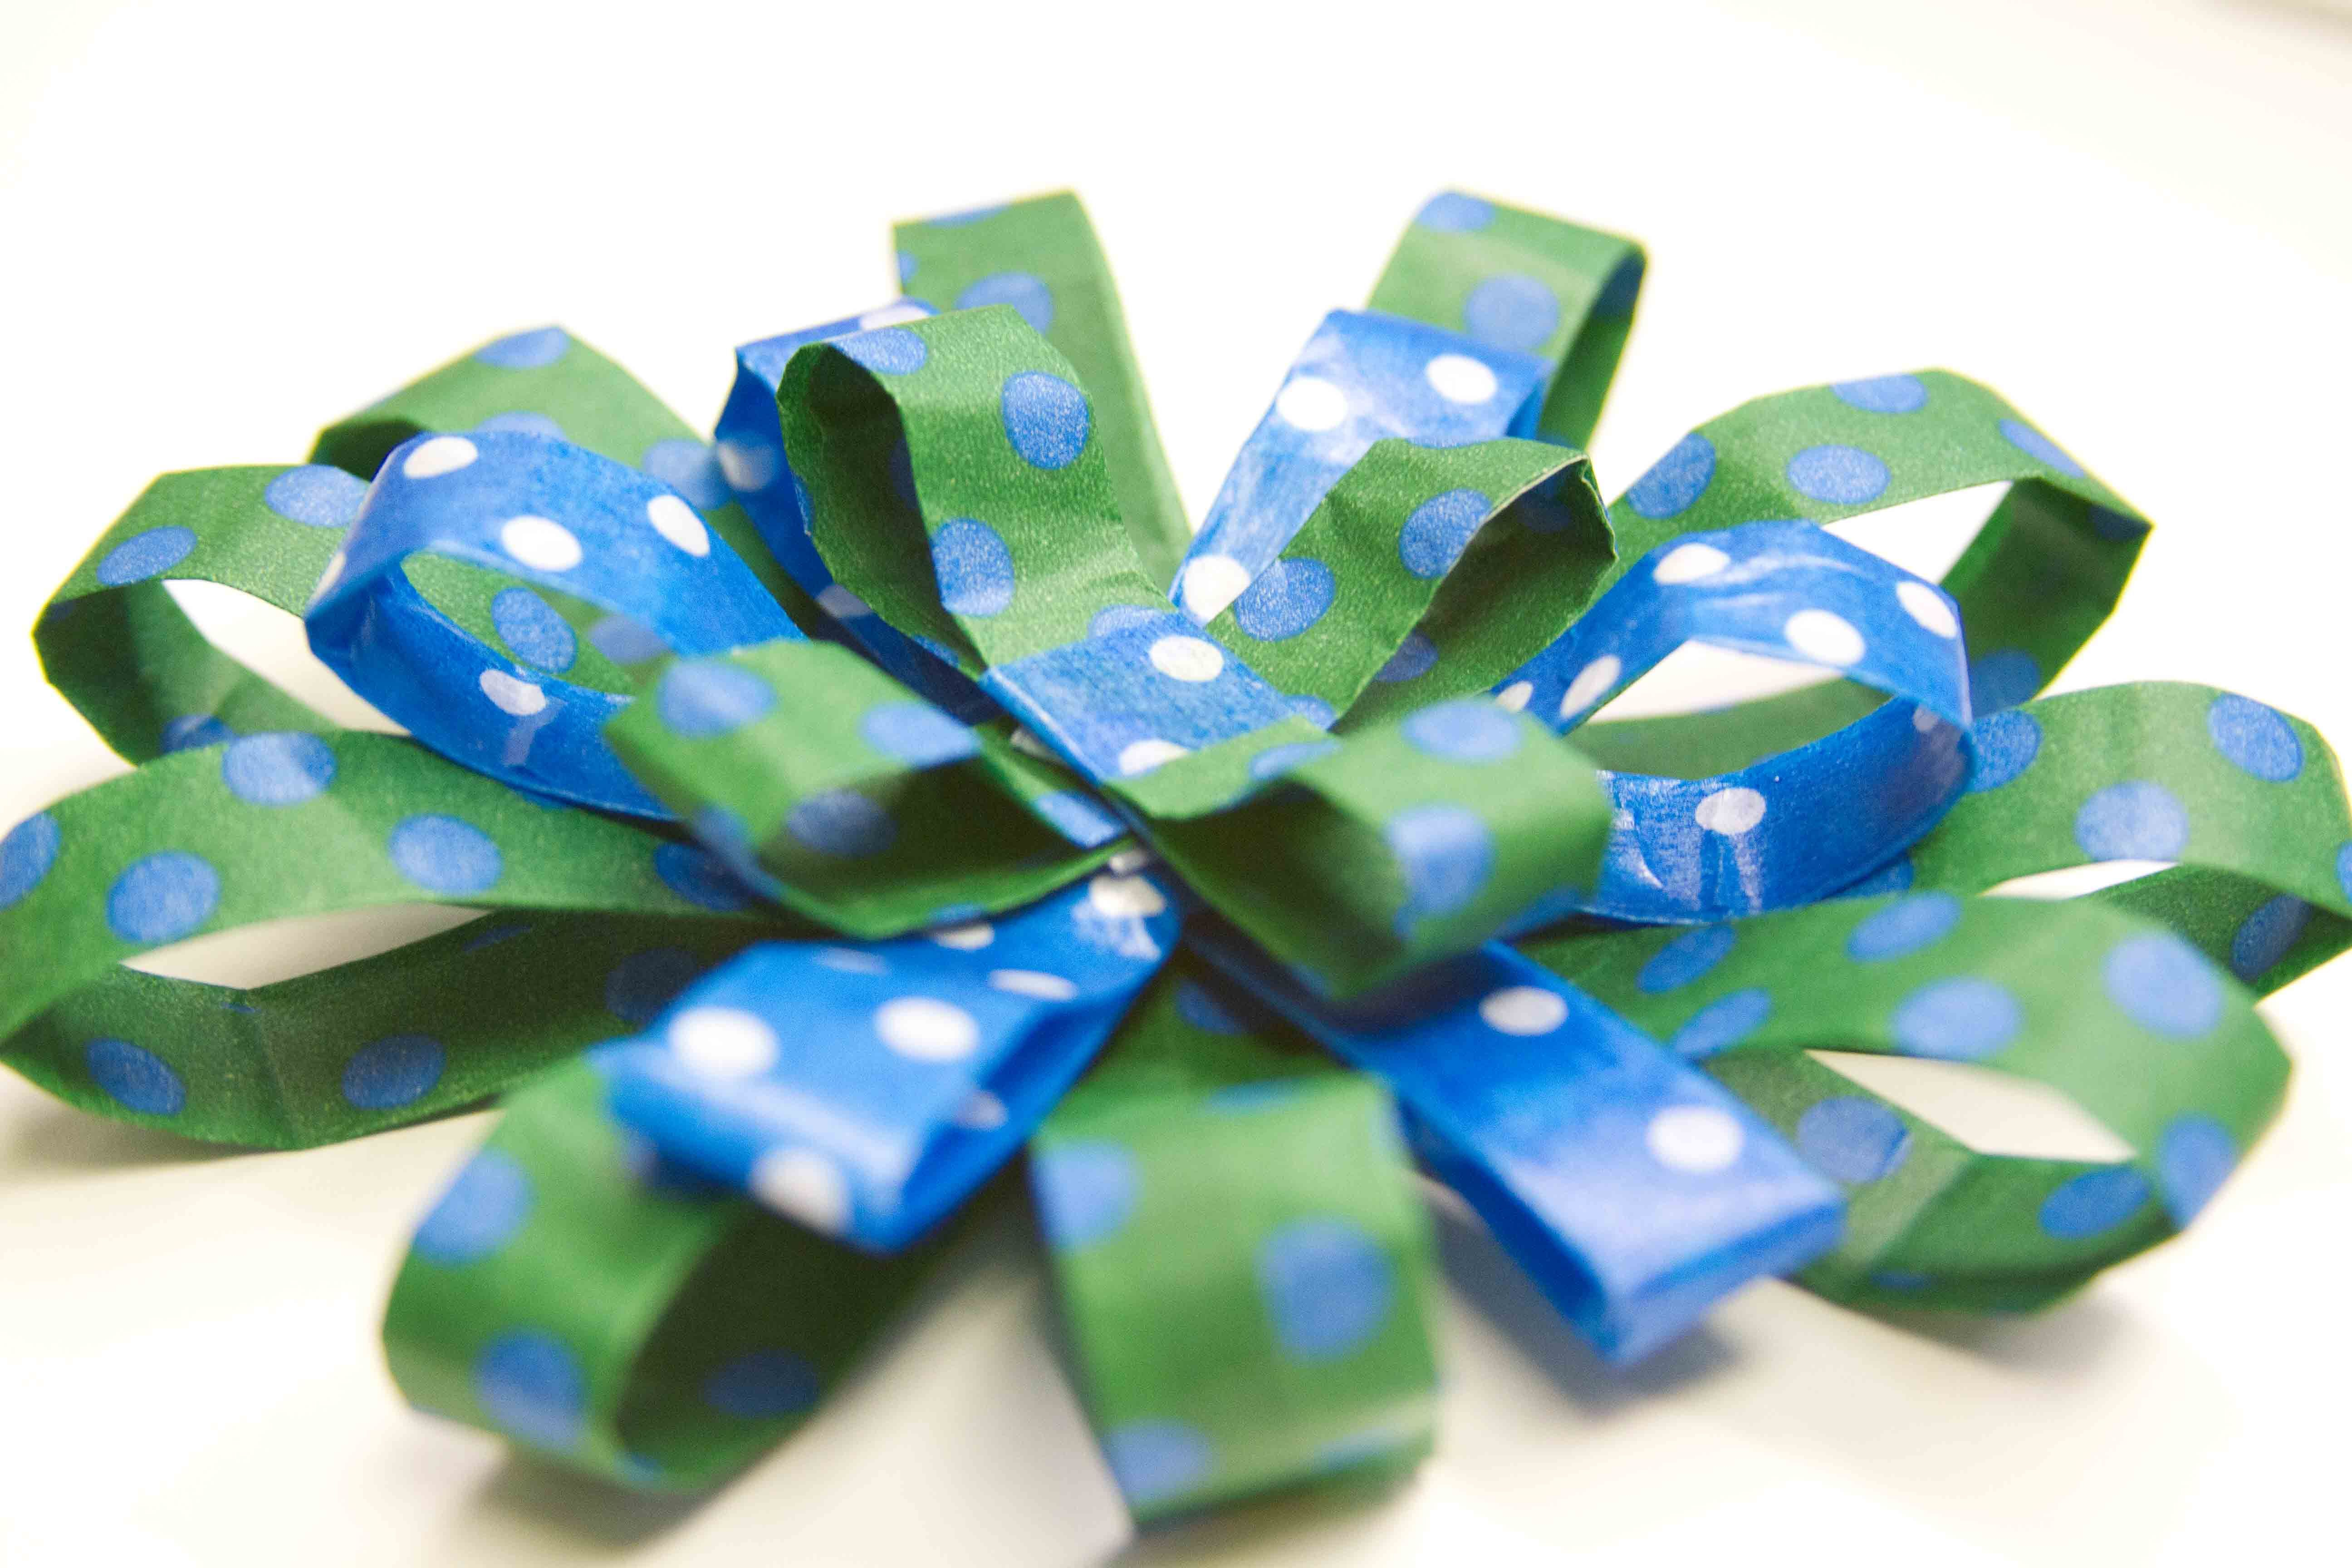 Here is a bow made from Snazzy tape by Mavalus. It works great on gifts!